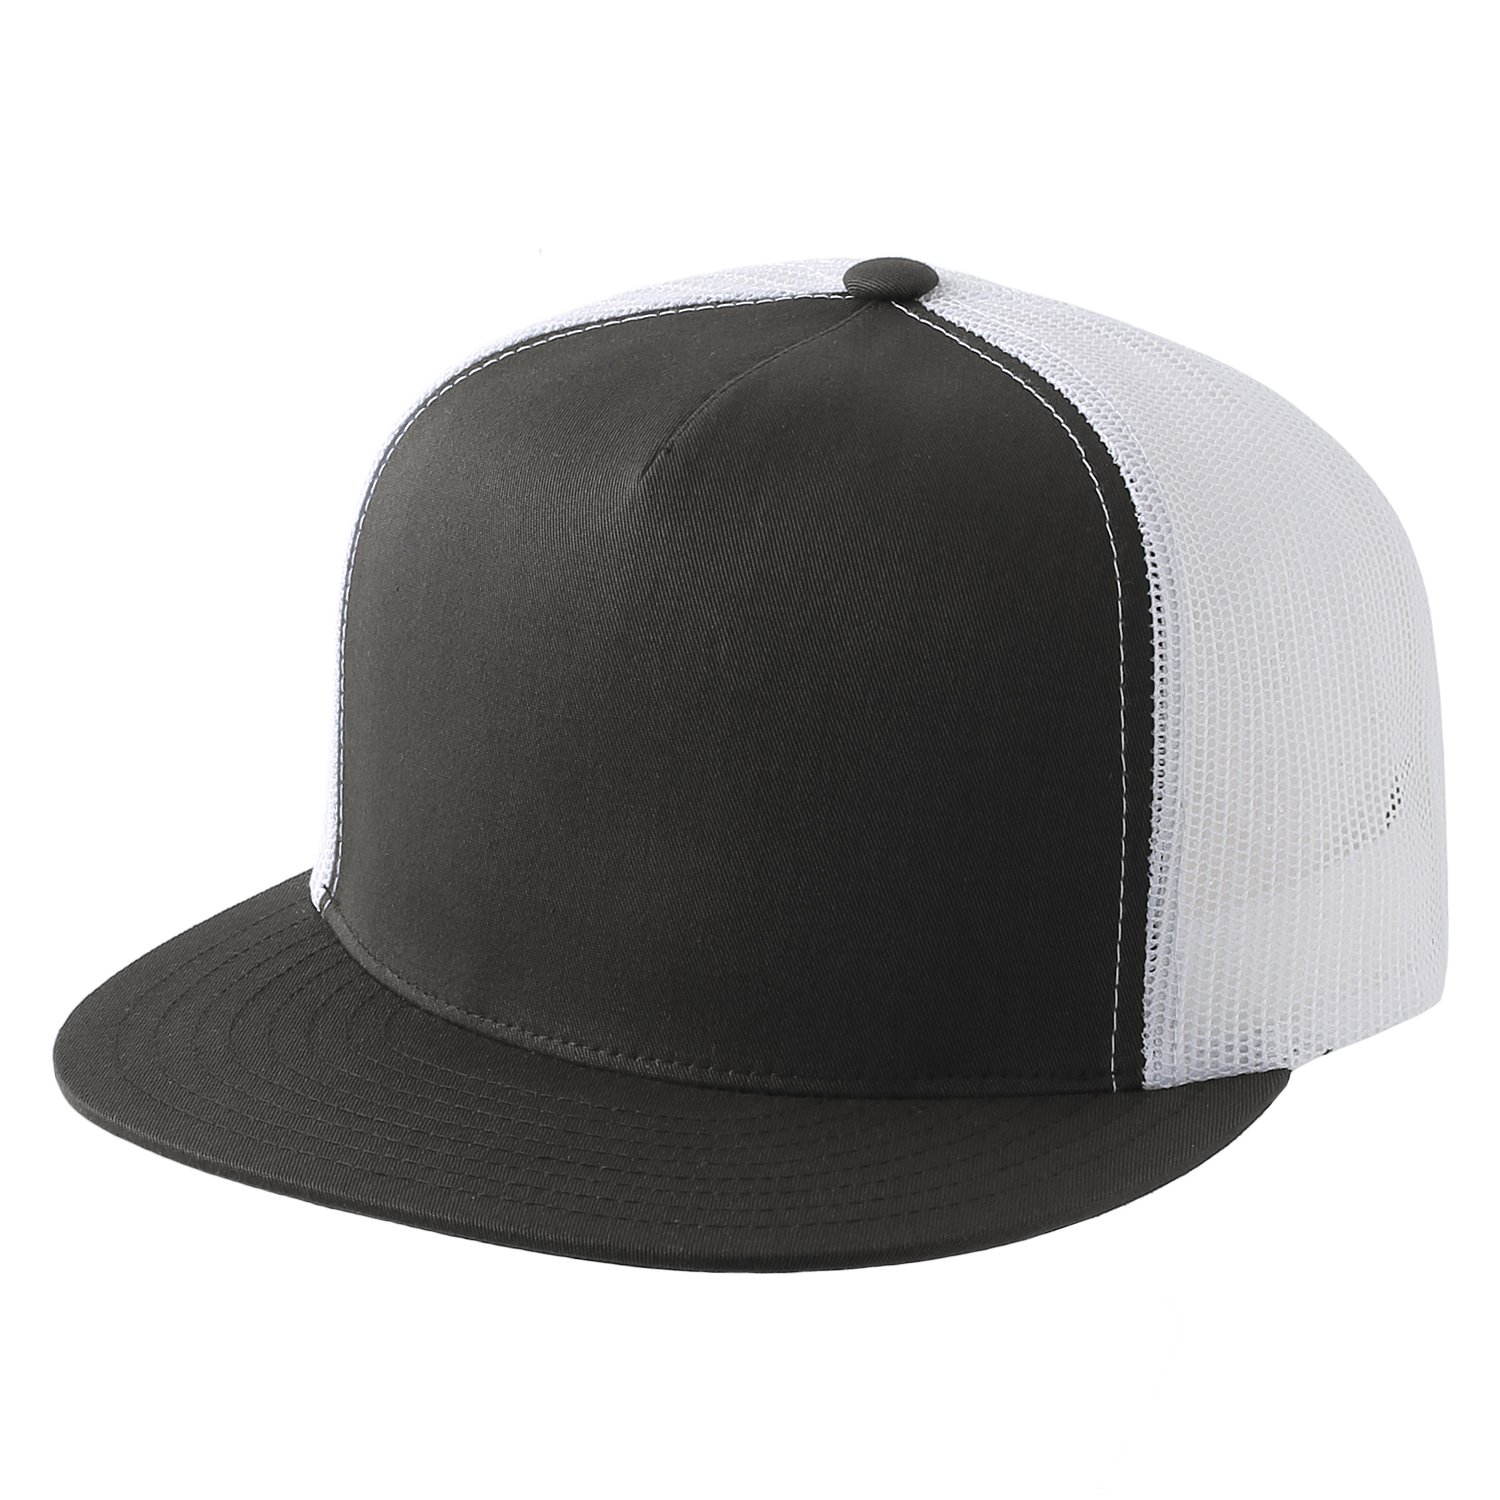 Yupoong Adult Classic Trucker with White Front Panel Cap-6006W NEW!